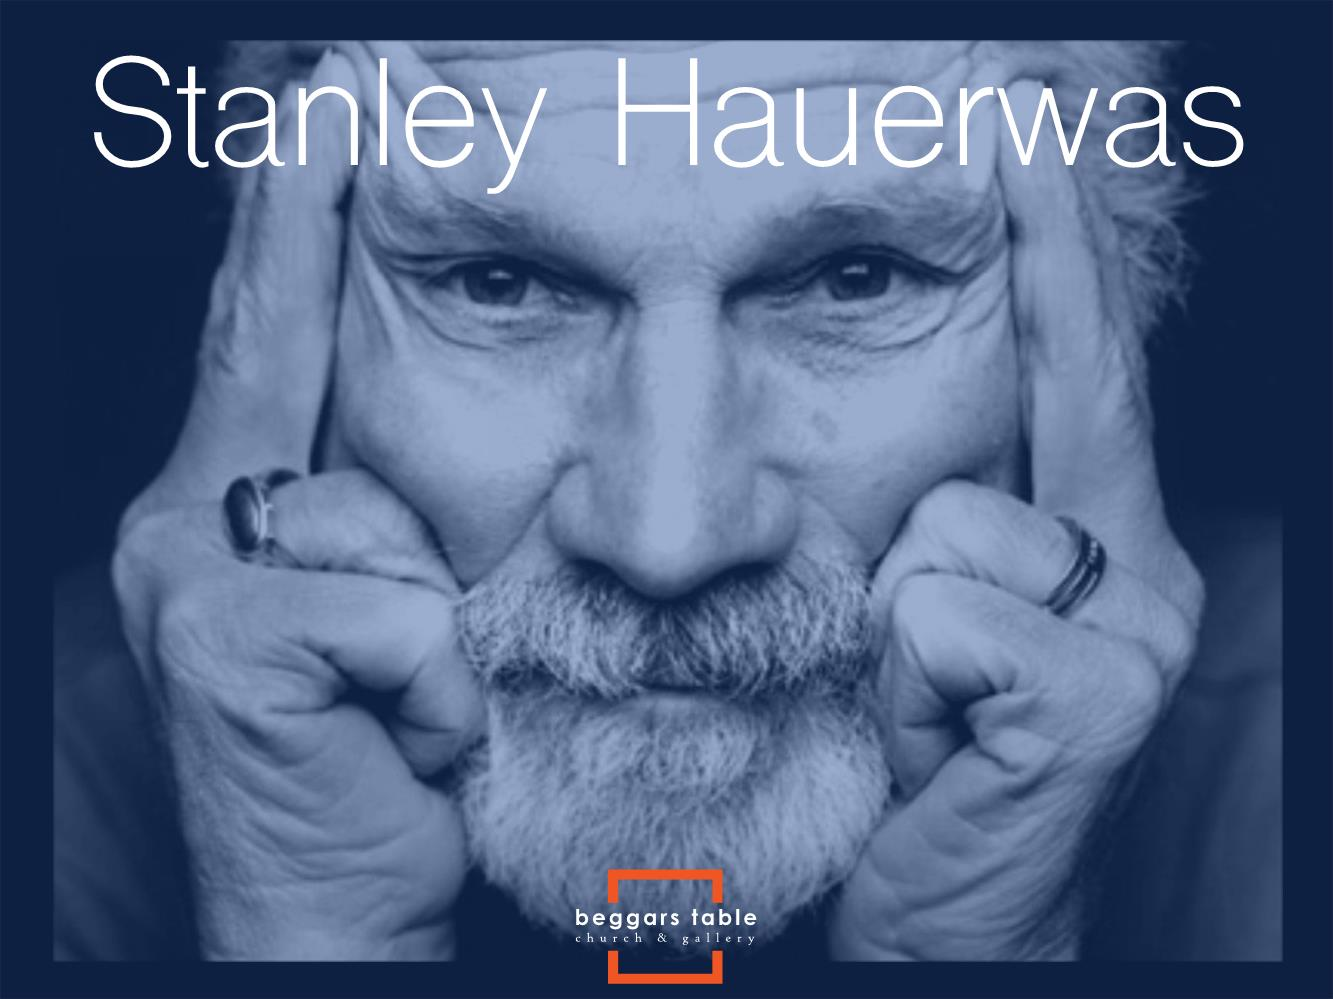 influences.hauerwas.jpg